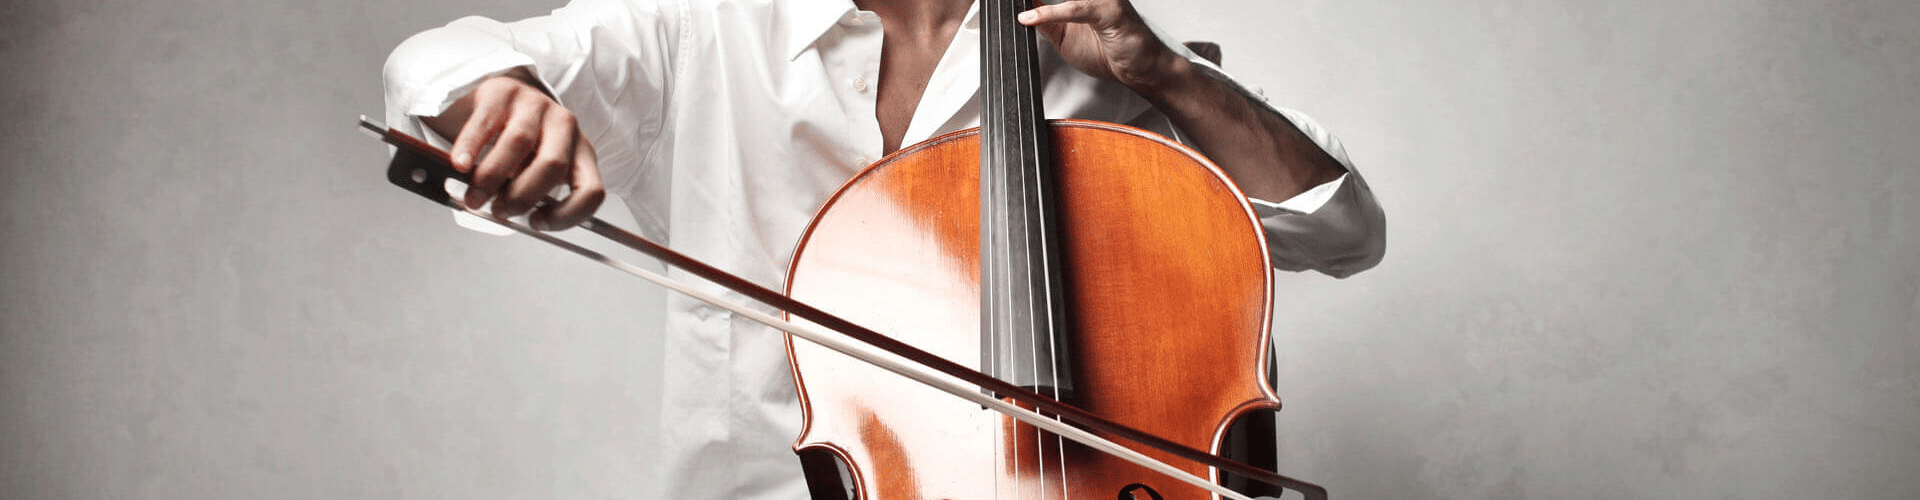 Best Cellos Reviewed in Detail